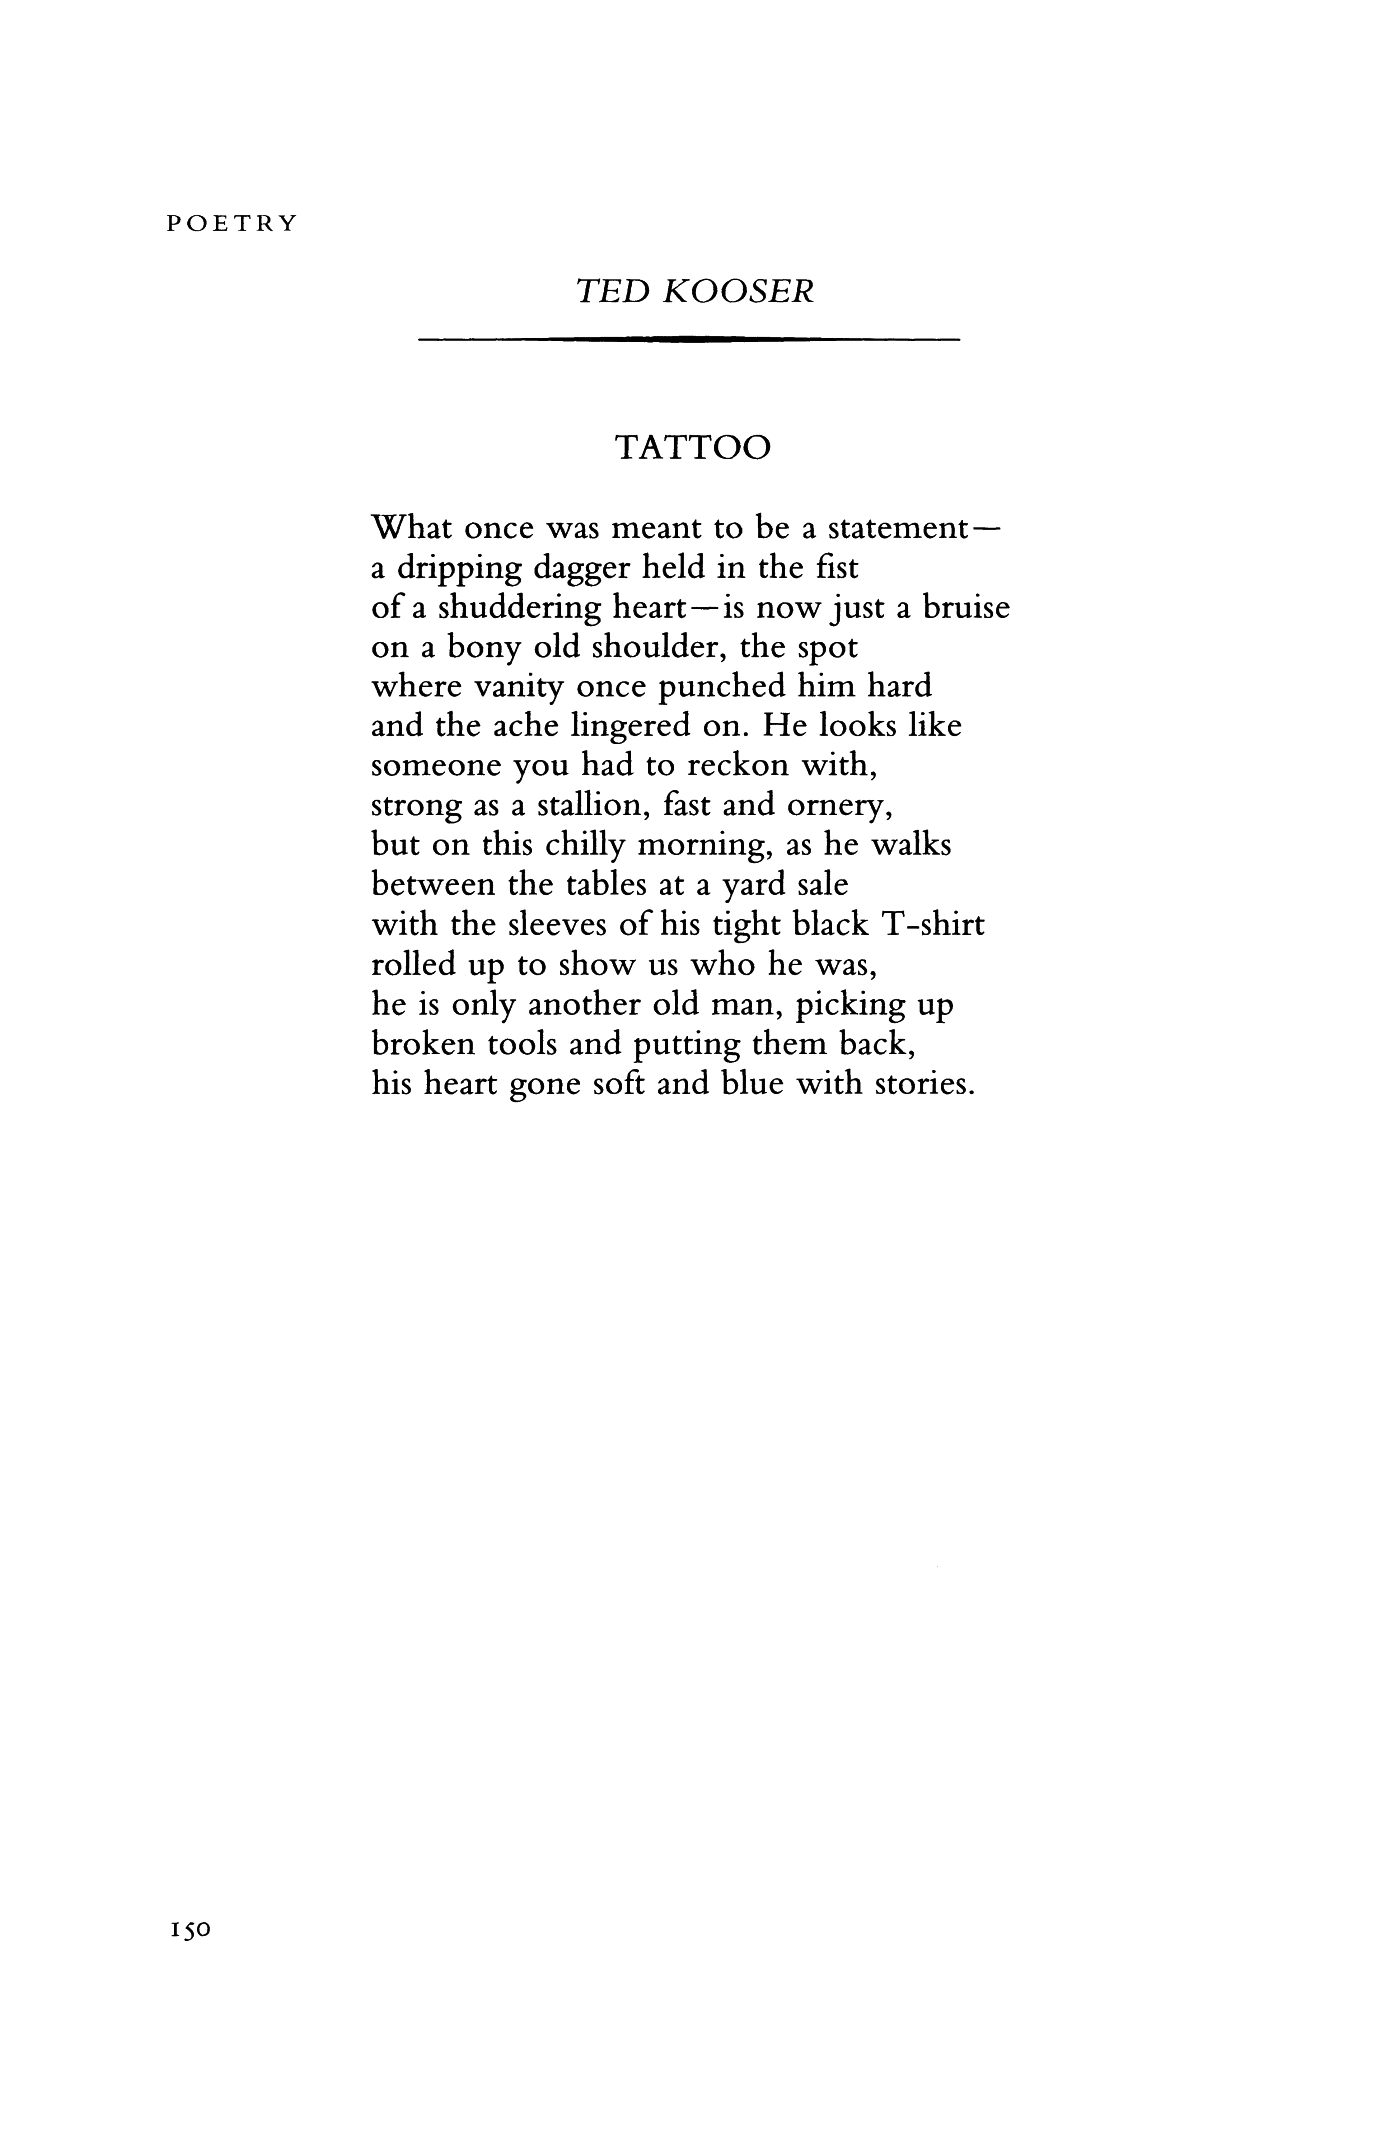 tattoo by ted kooser Tattoo -- by ted kooser what once was meant to be a statement— a dripping dagger held in the fist of a shuddering heart—is now just a bruise on a bony old shoulder, the spot where vanity once punched him hard and the ache lingered on.